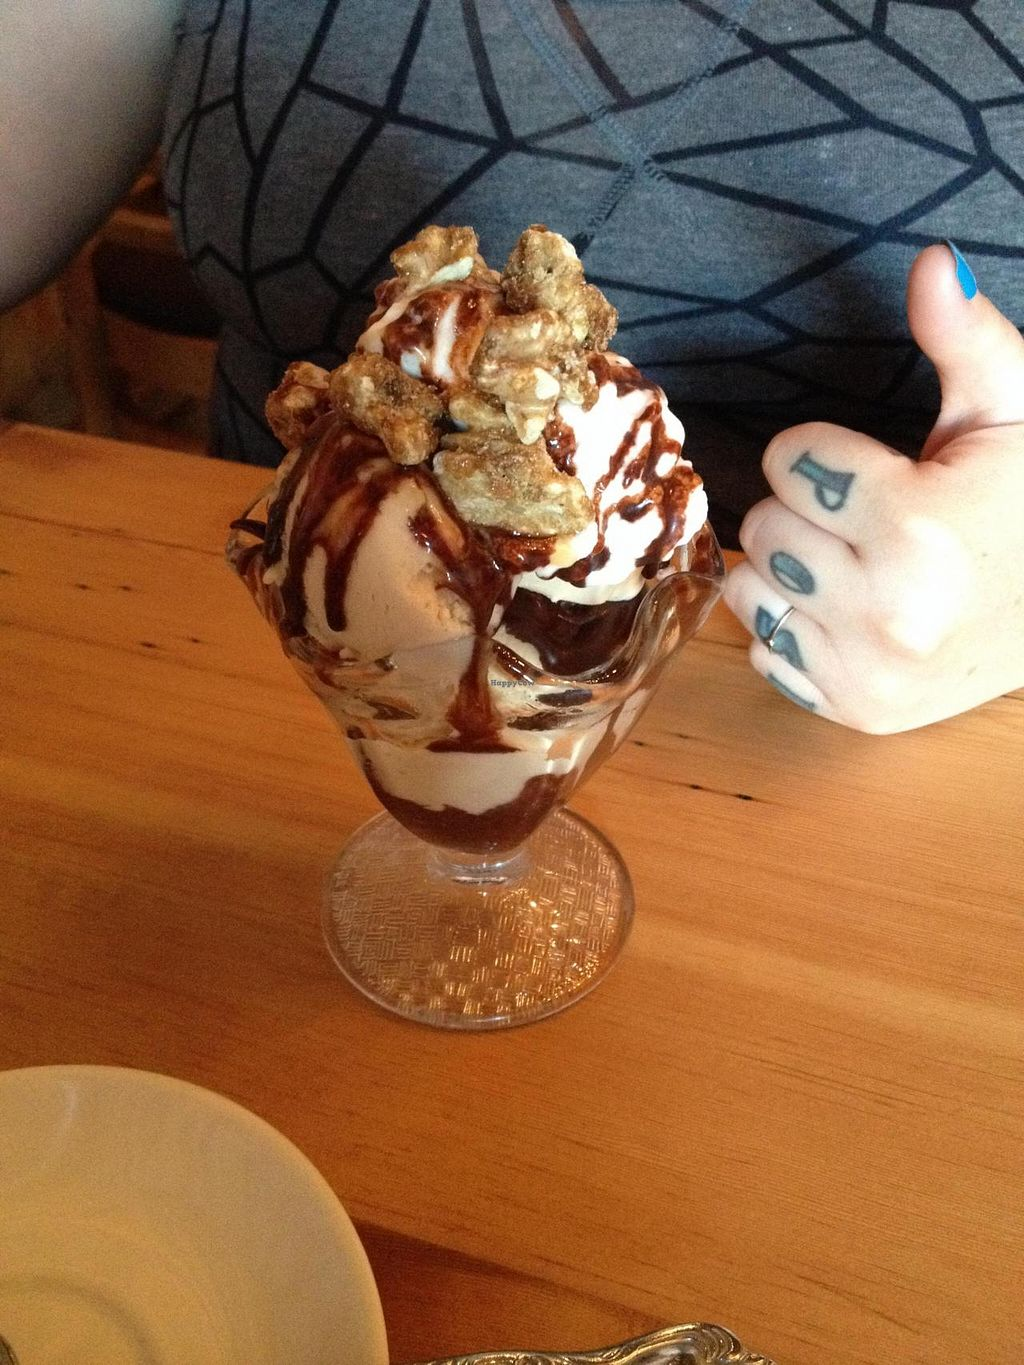 "Photo of CLOSED: Portobello Vegan Trattoria  by <a href=""/members/profile/Posi%20Britt"">Posi Britt</a> <br/>Salted caramel ice cream! <br/> June 25, 2014  - <a href='/contact/abuse/image/17009/72765'>Report</a>"